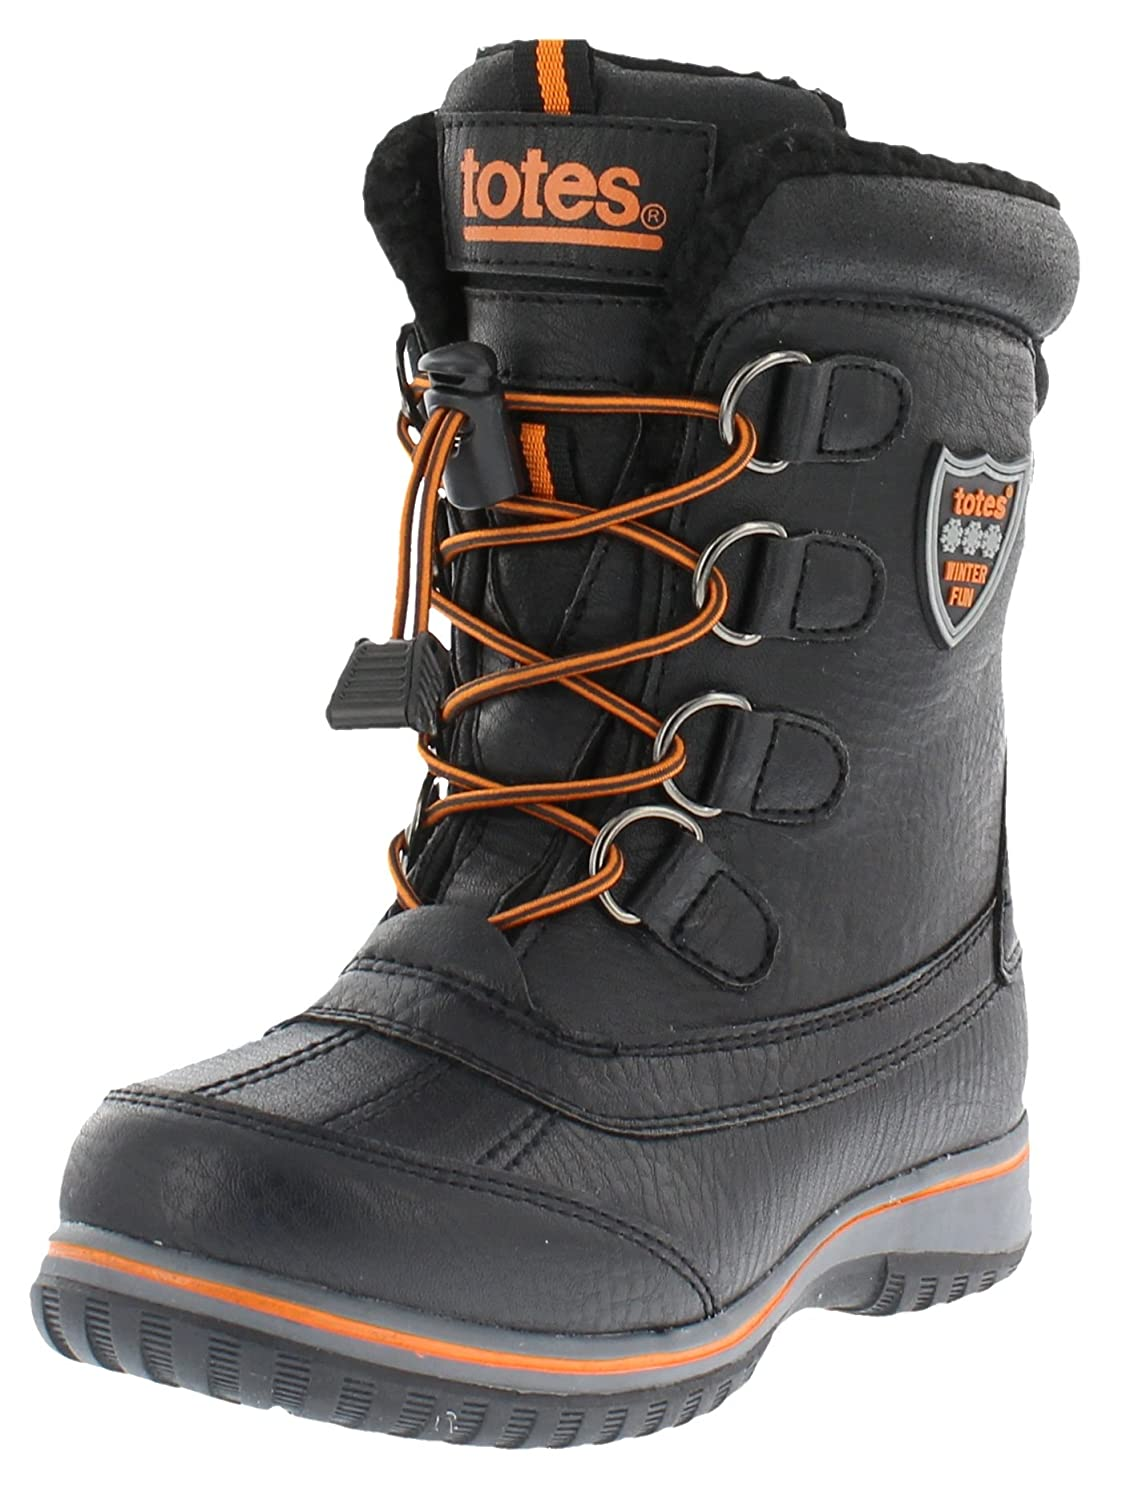 totes Boys Buster Waterproof Snow Boot